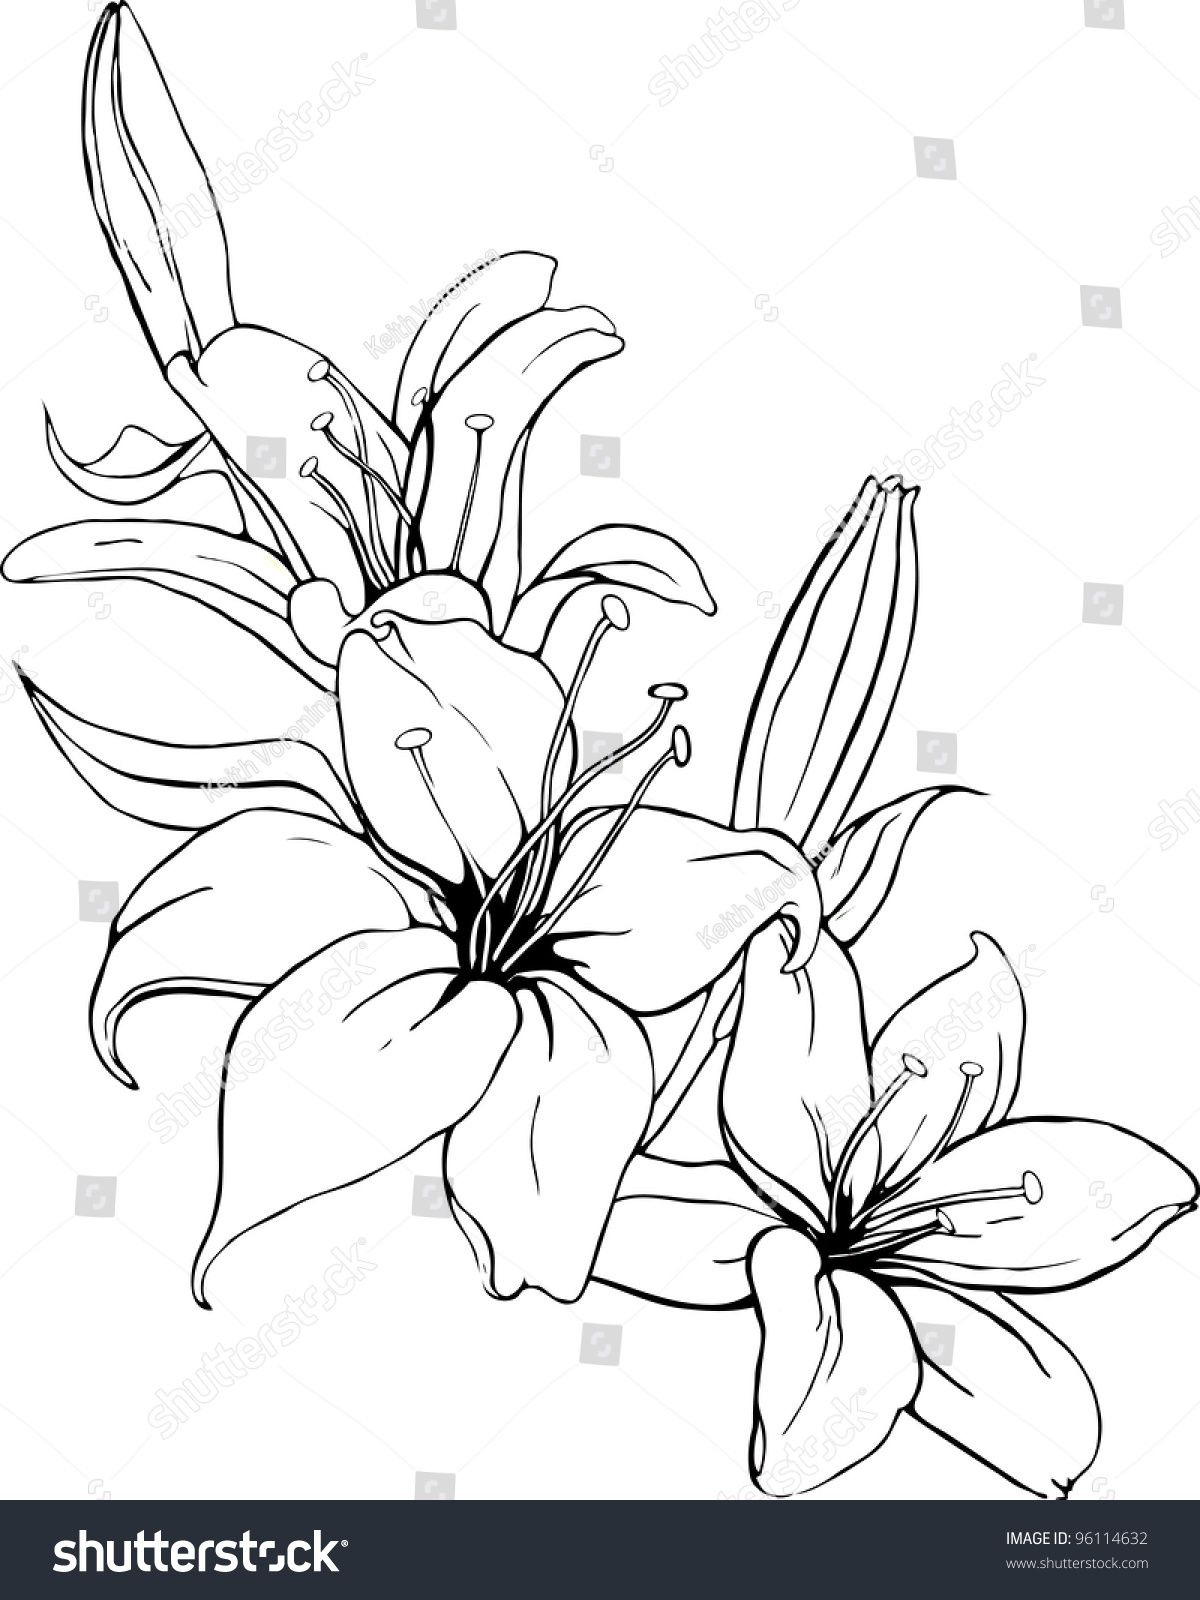 Vector illustration of lily in black and white colors